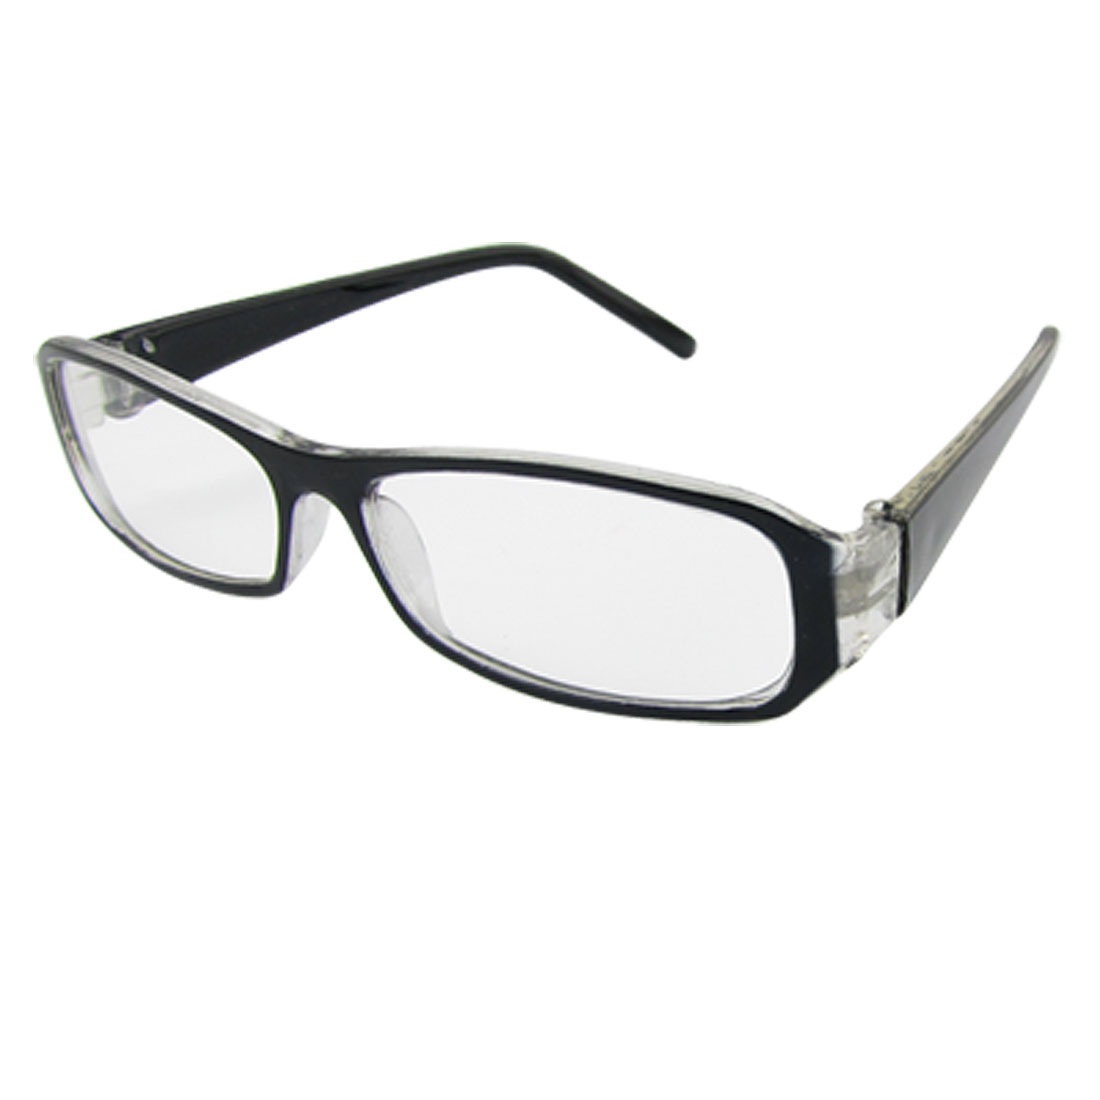 Unisex Full Rim Black Clear Plastic Plain Glass Spectacles